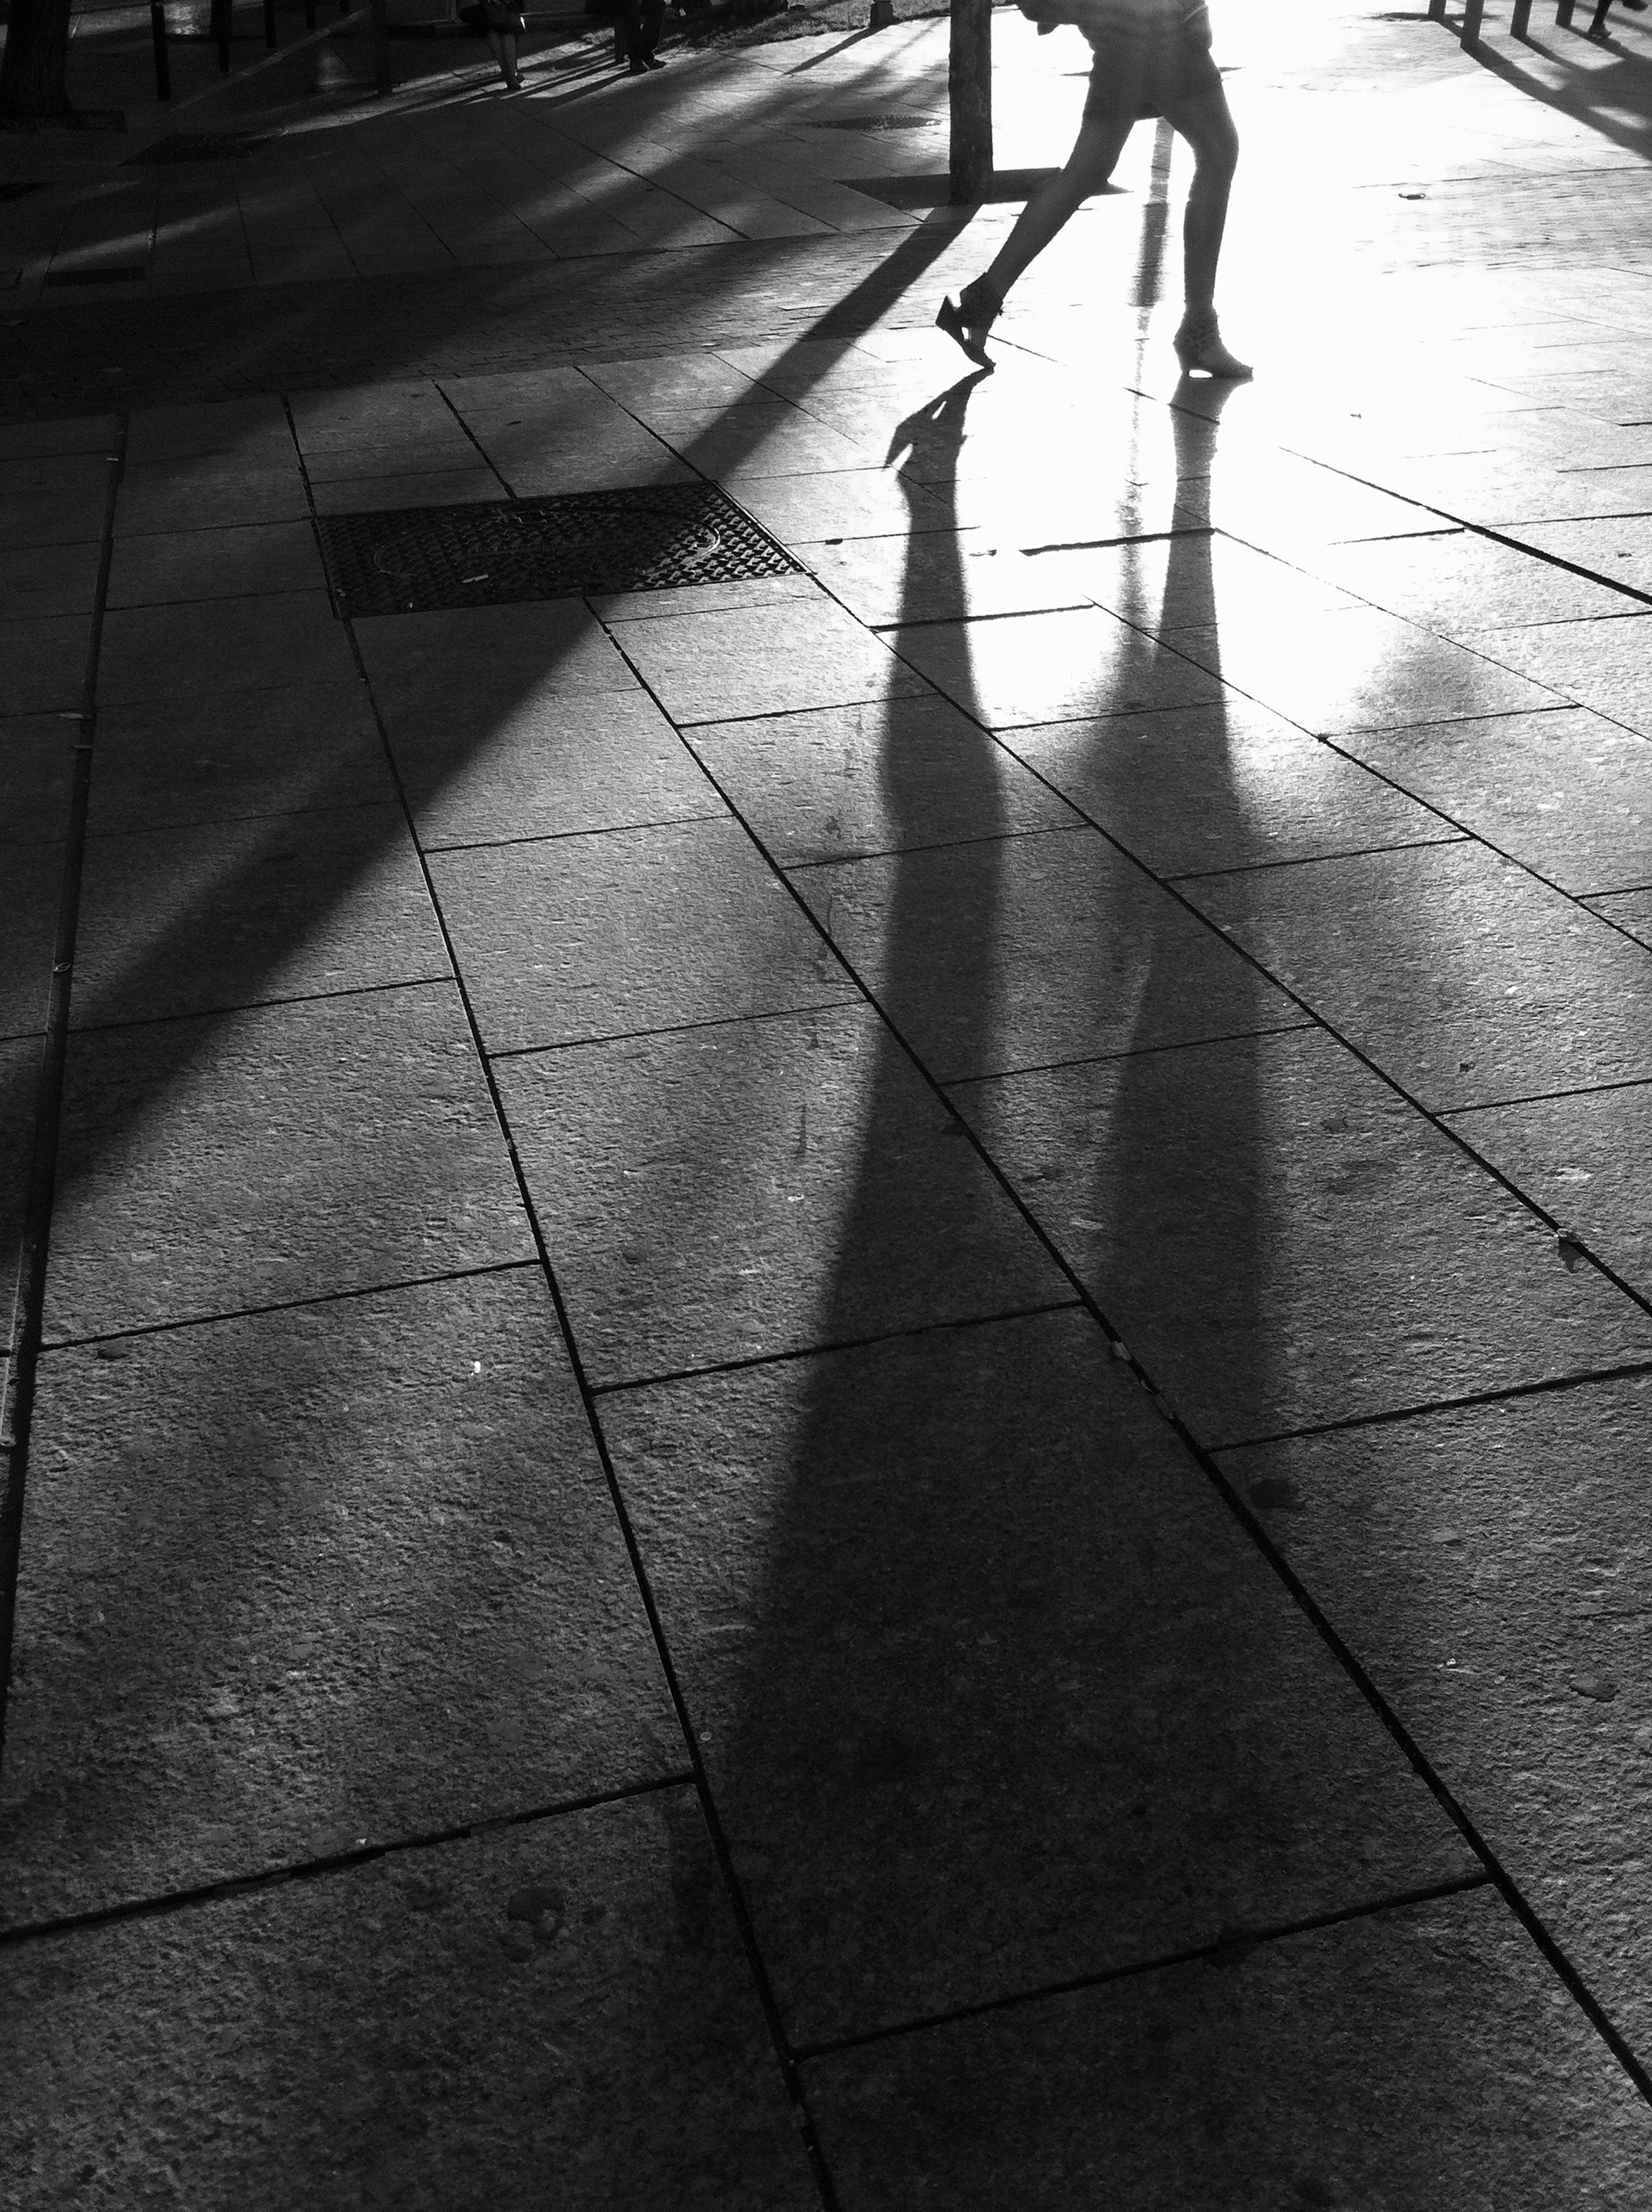 Shadow woman. Monochrome street photography